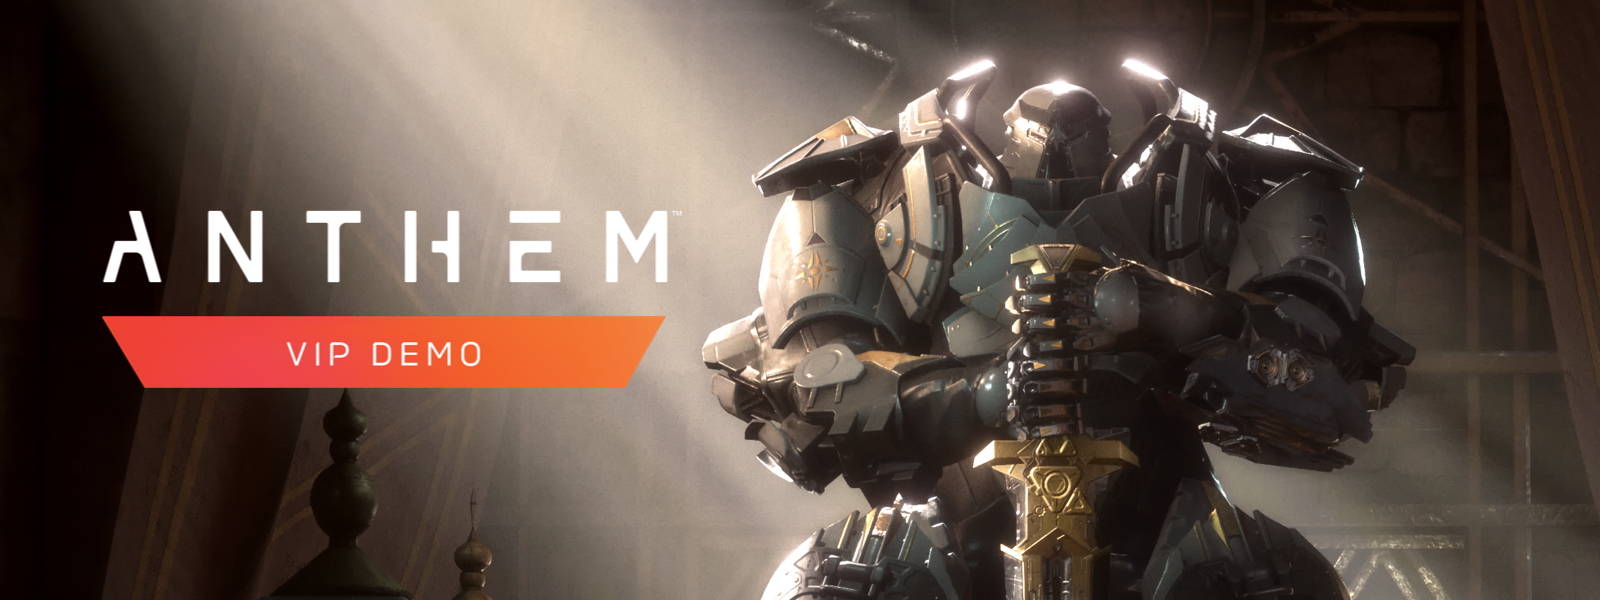 Anthem VIP Demo, A large person in a javelin suit holds a sword and stands stoically